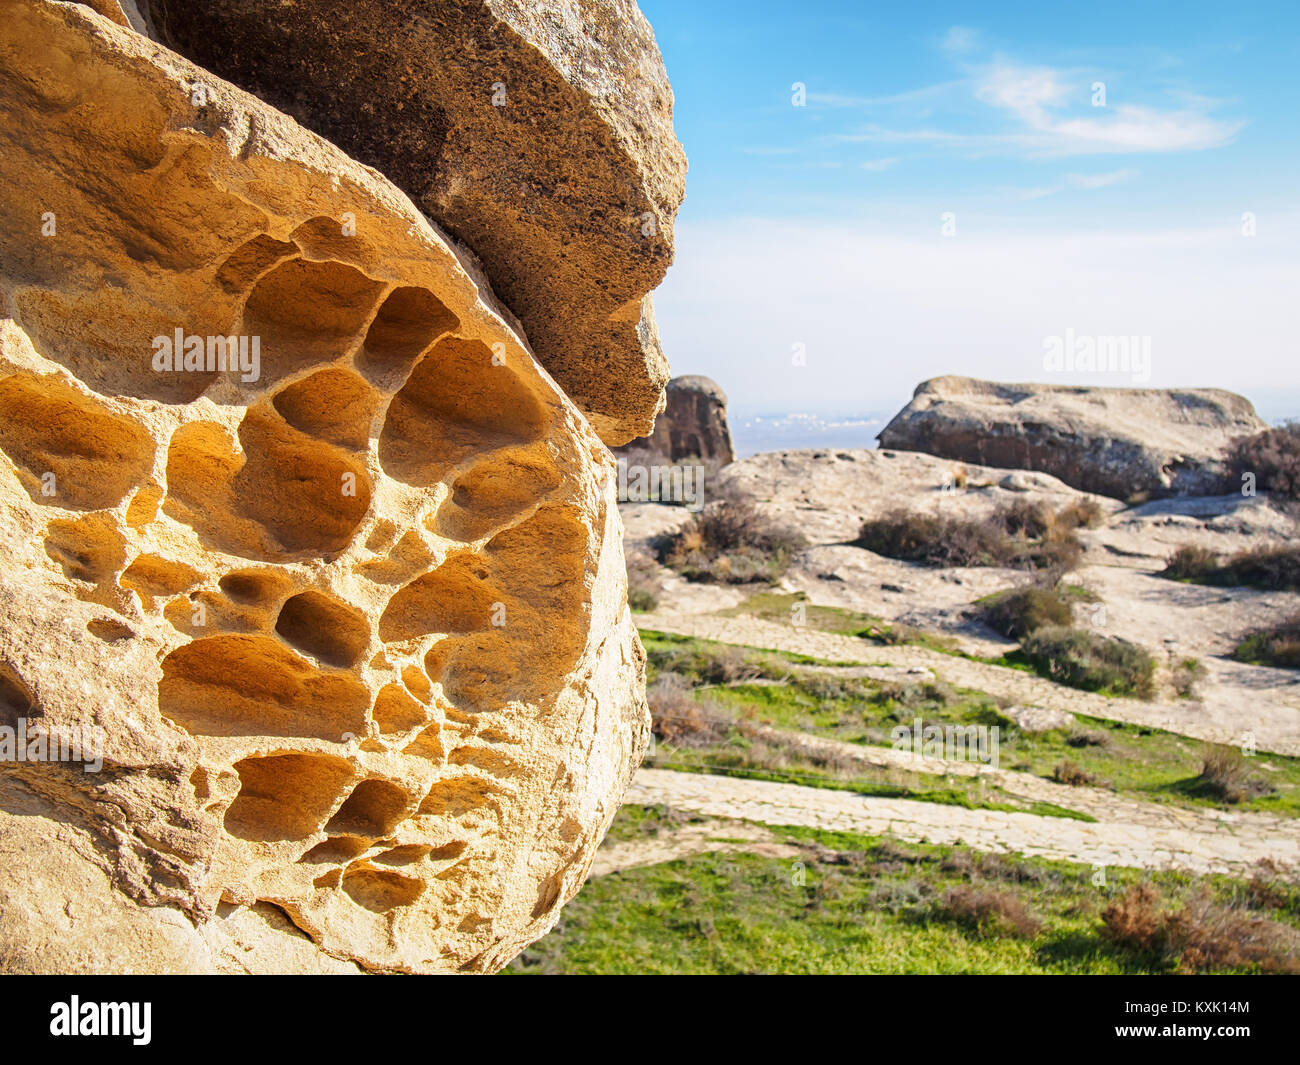 Perforated chalk-stone rock in the Gobustan National Park, Azerbaijan - Stock Image